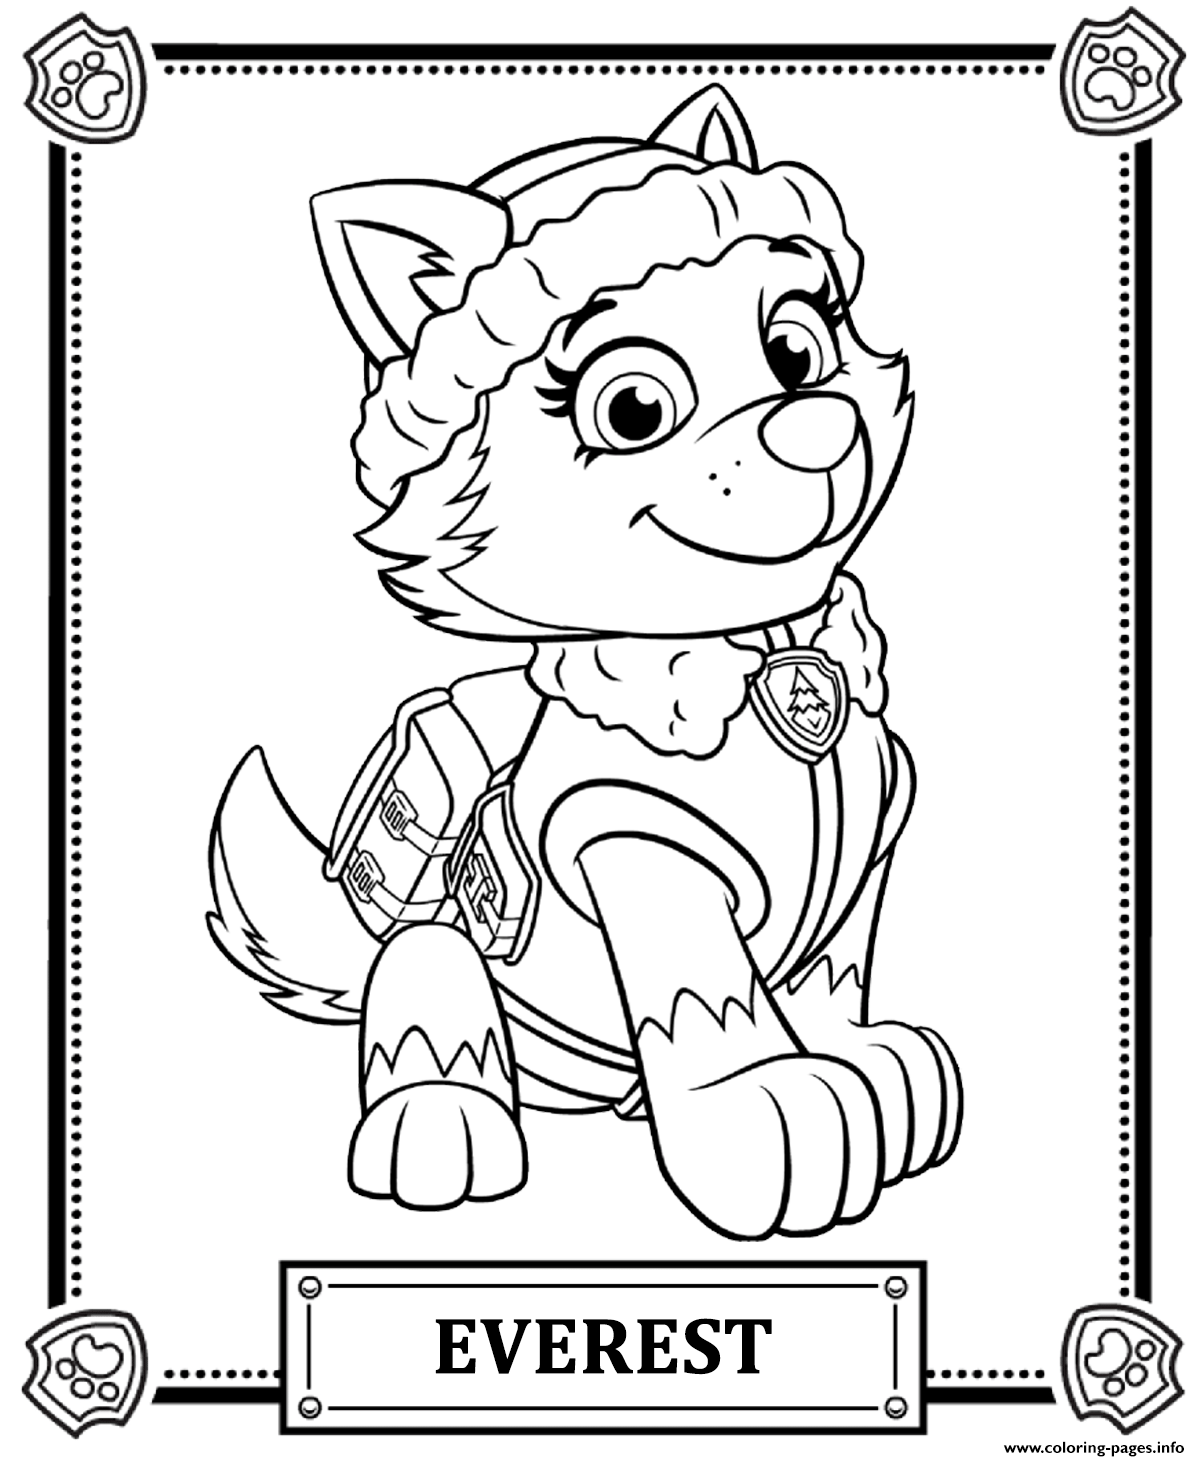 Print Paw Patrol Everest Coloring Pages Brandon